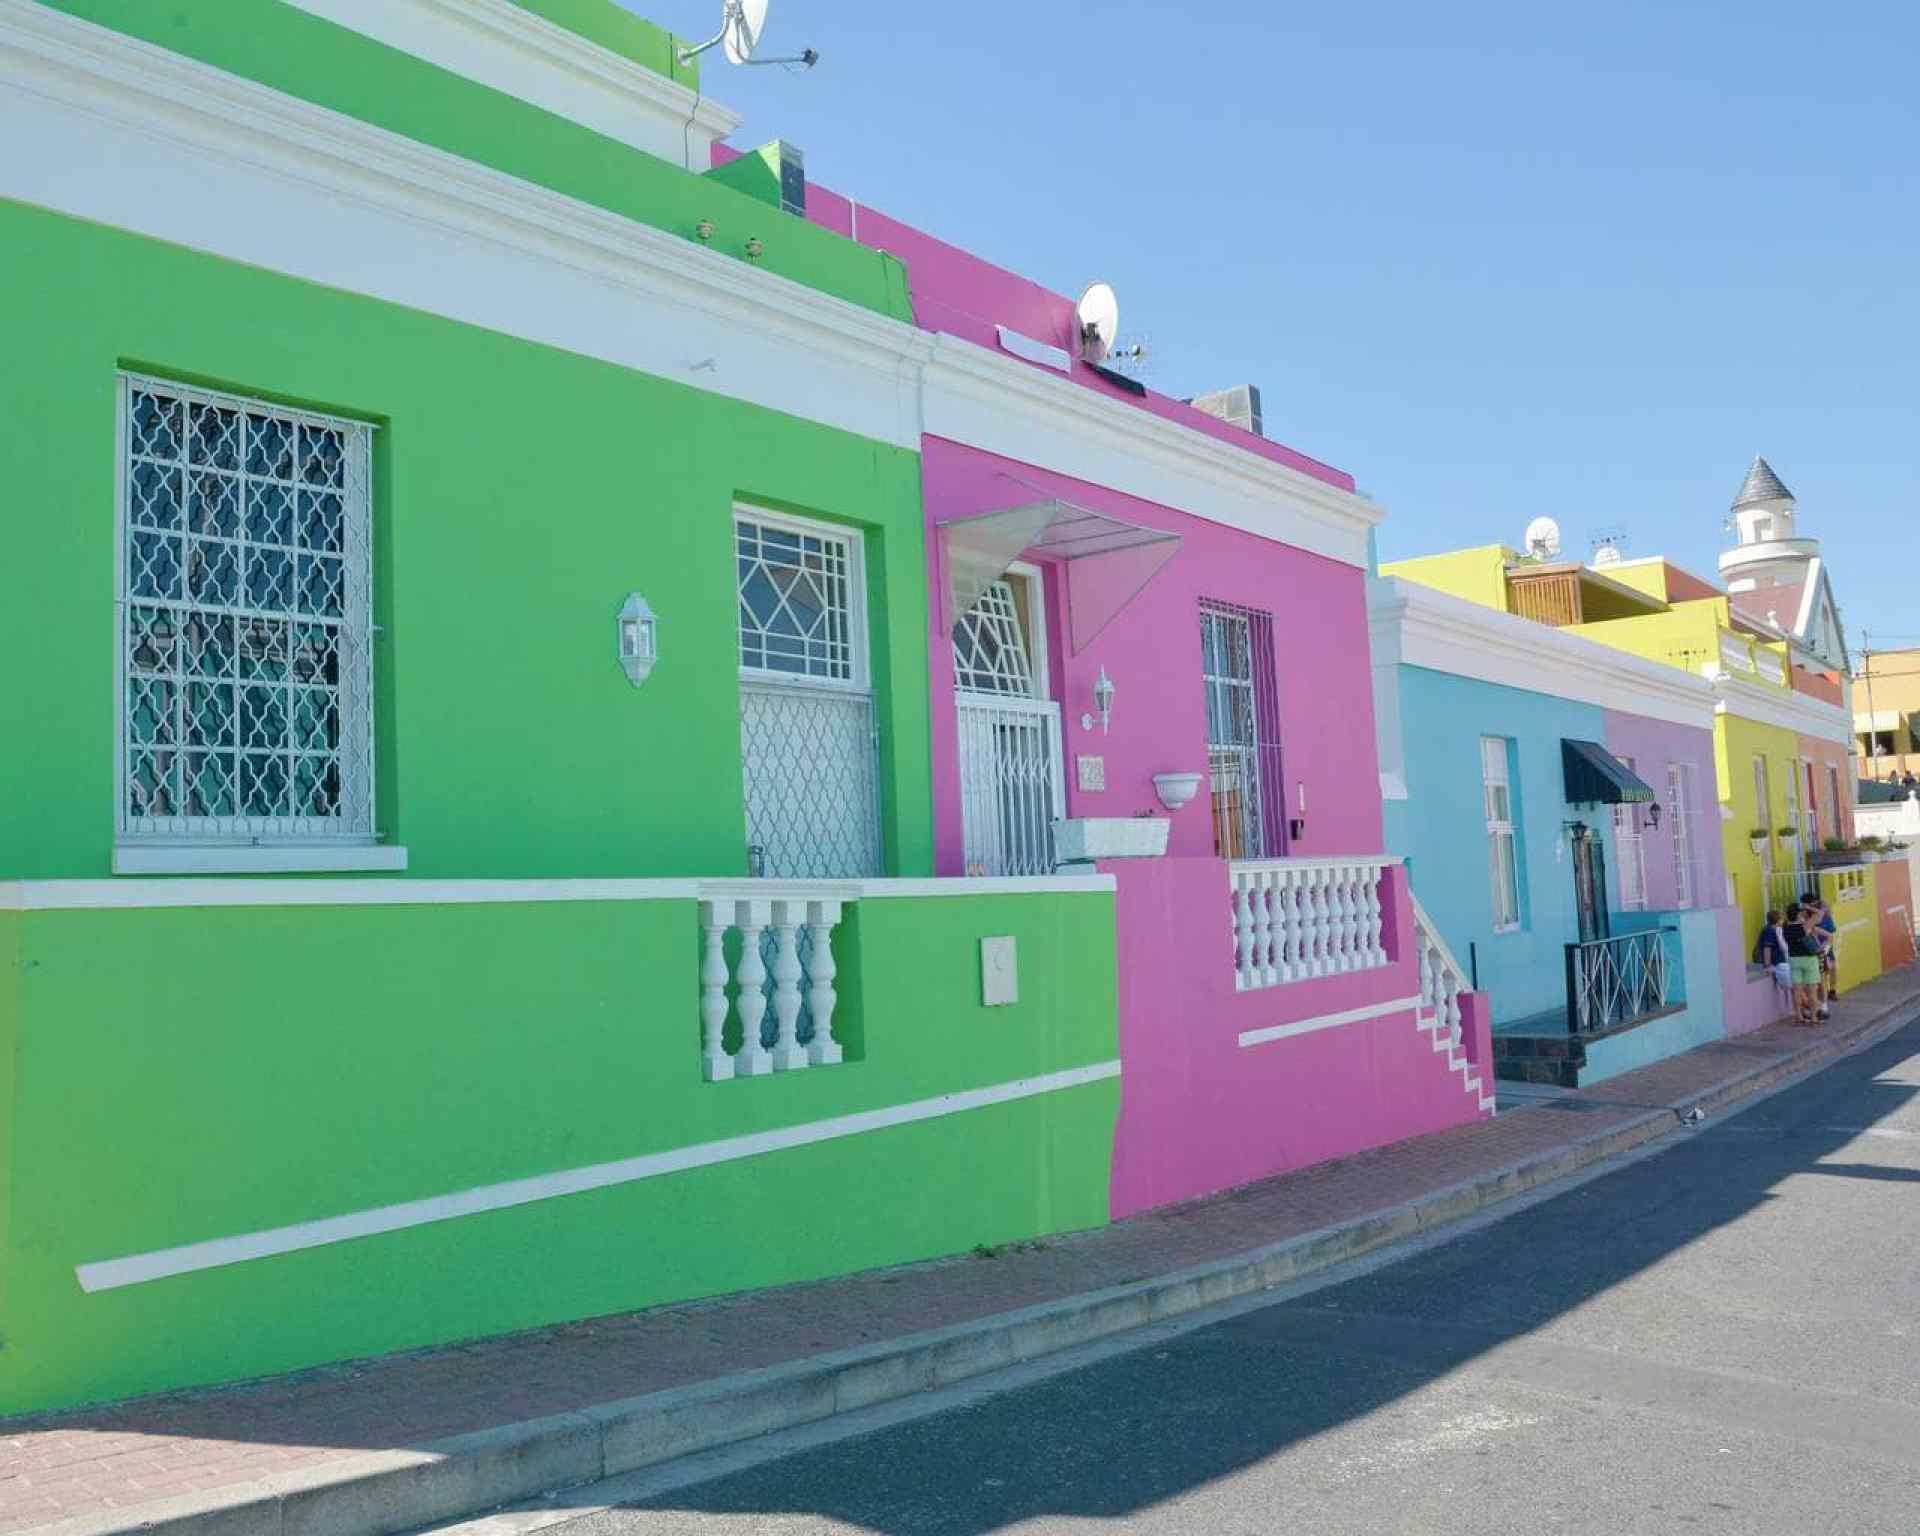 The iconic colourful houses that line the street of Bo Kaap